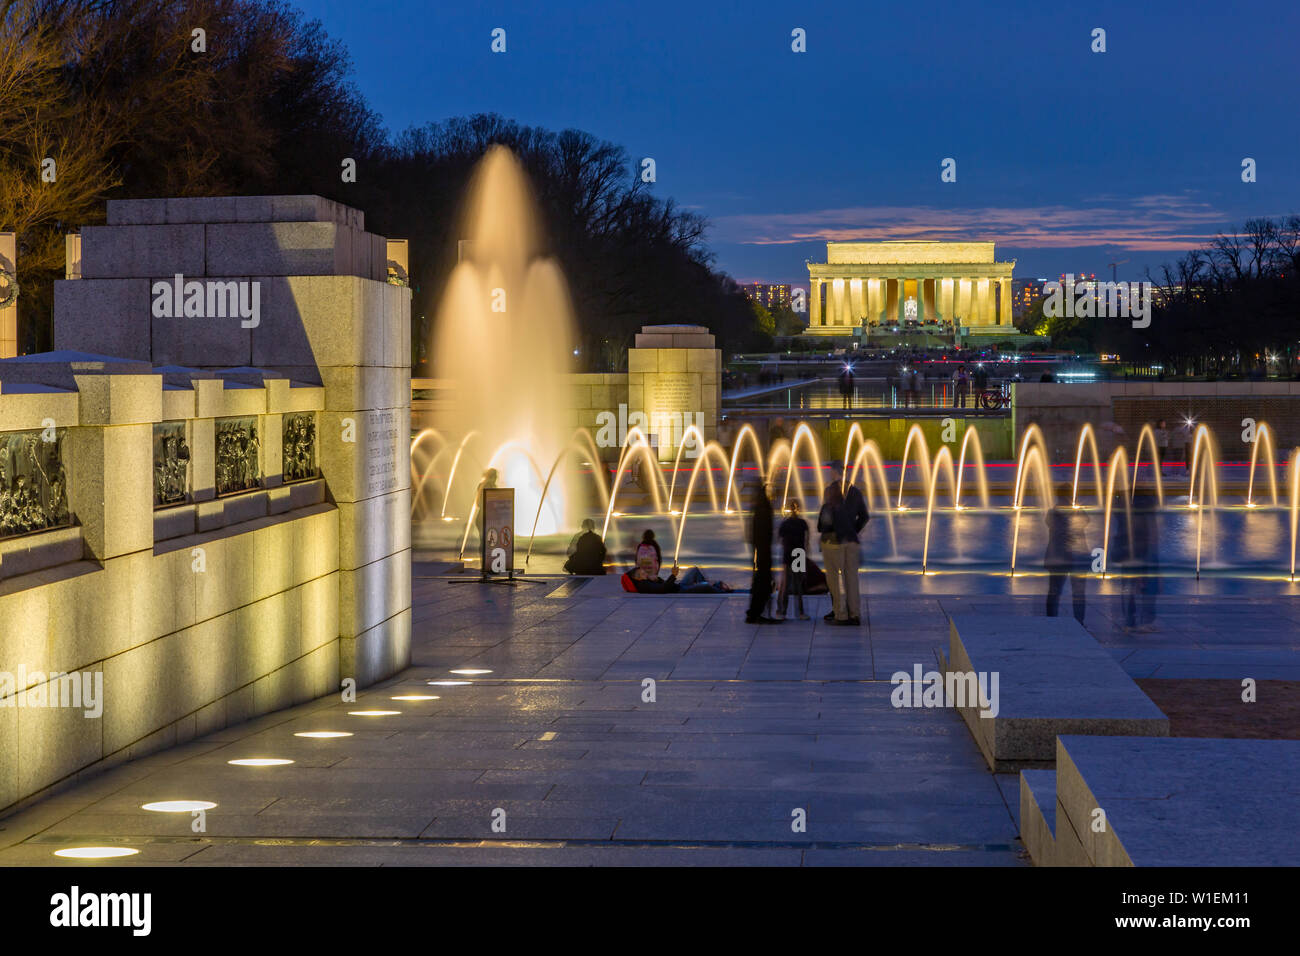 View of the World War Two Memorial and Lincoln Memorial illuminated at dusk, Washington, D.C., United States of America, North America Stock Photo